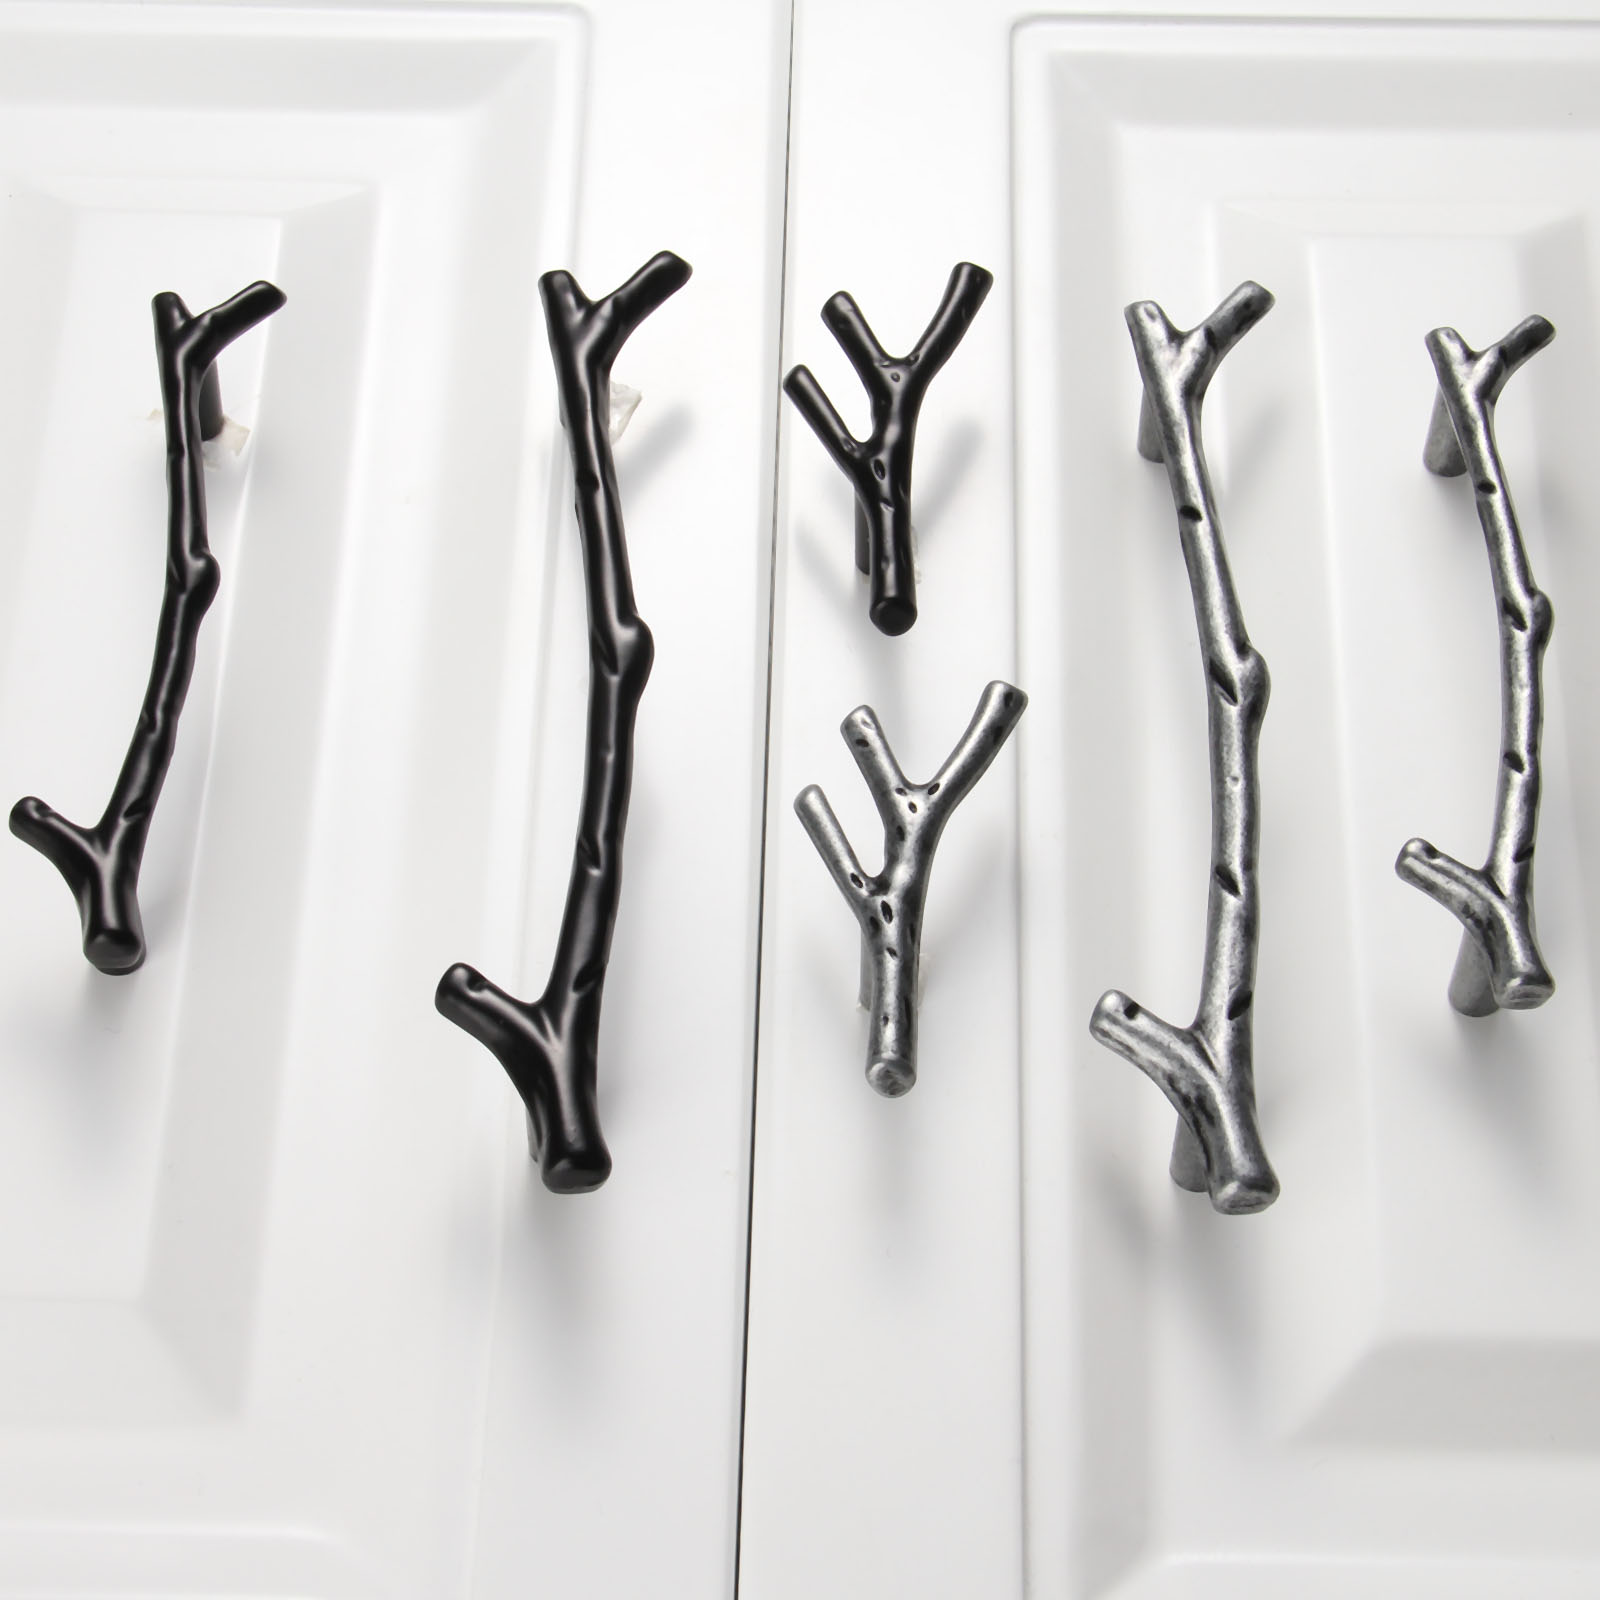 1Pc 96/128mm Furniture Handles Tree Branch Kitchen Closet Drawer Handles Pulls Cupboard Dresser Cabinet Knobs and Handles 53000459